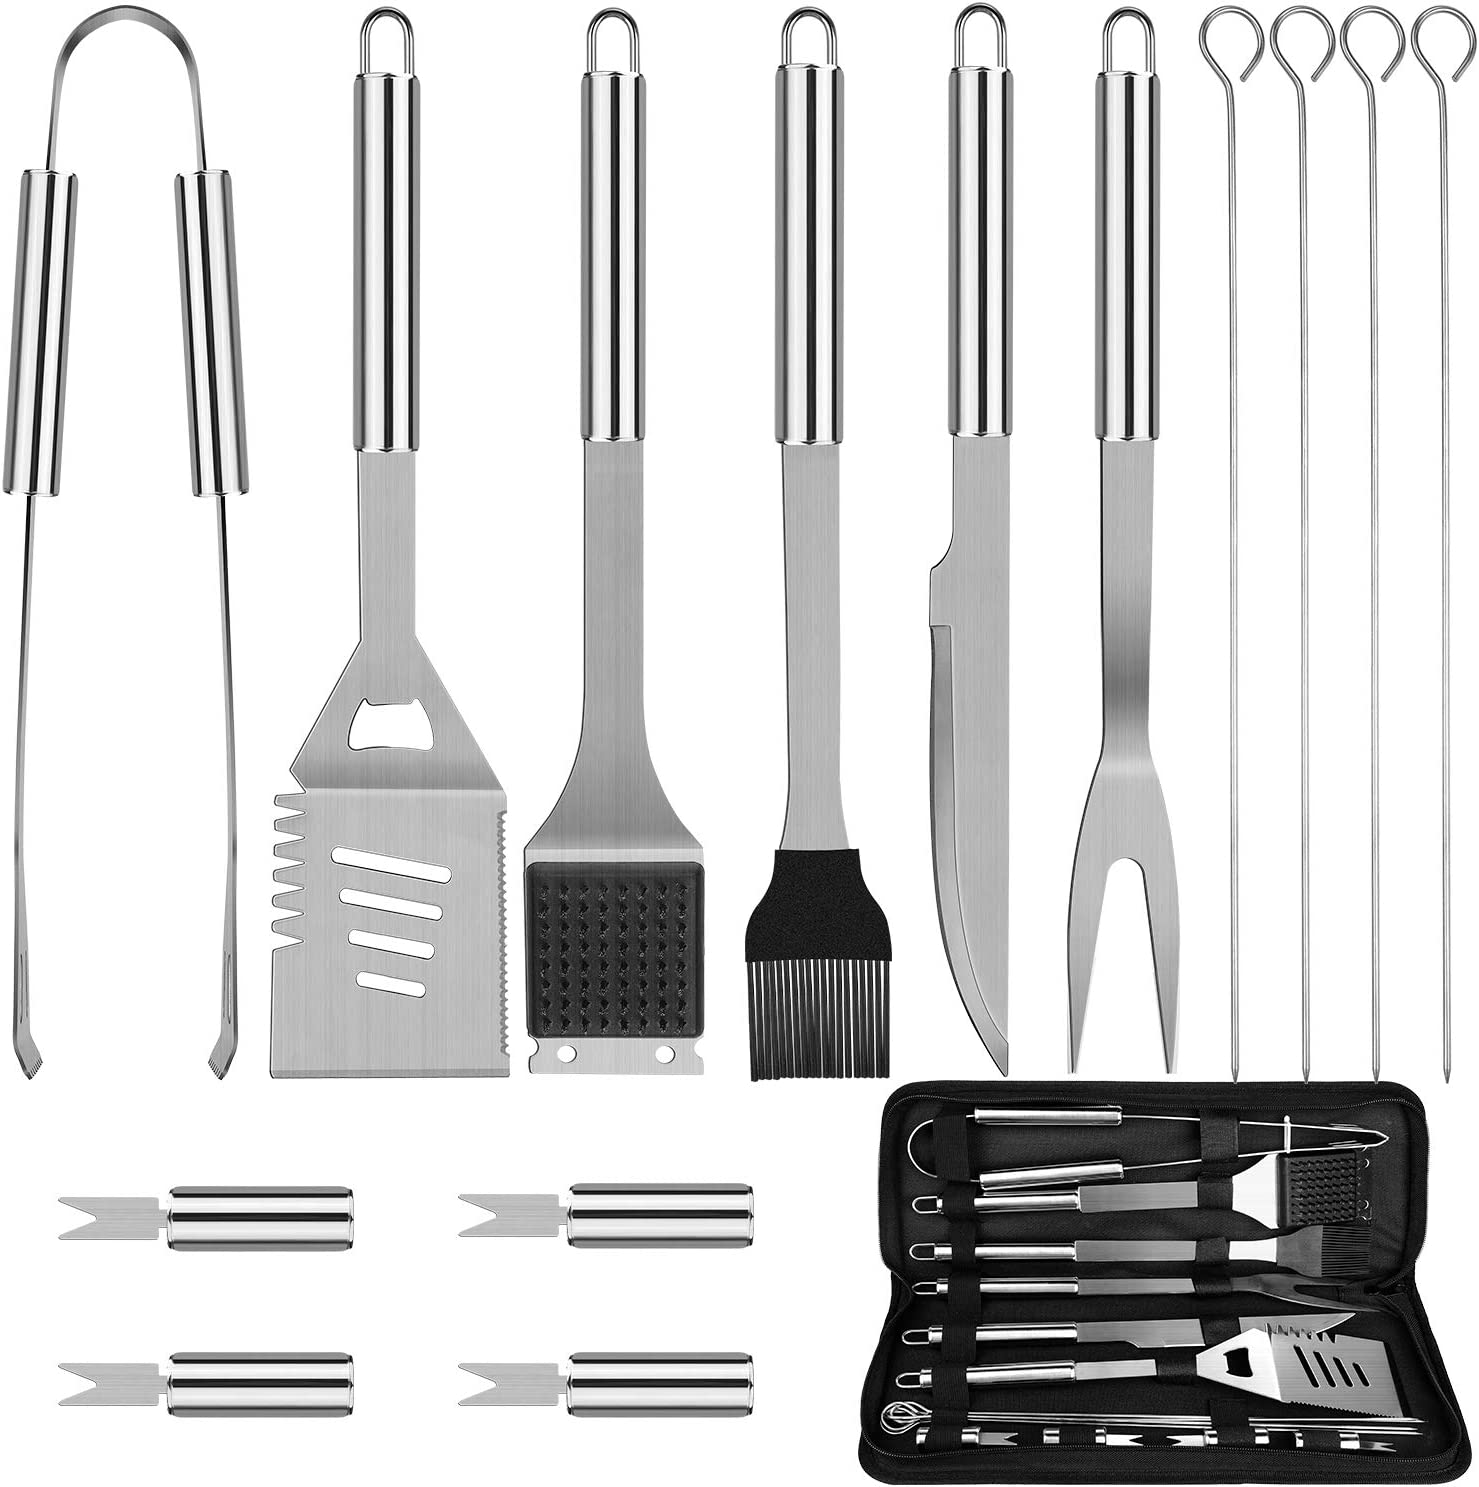 Anpro Grilling Accessories BBQ Tools Set, 15 PCS Stainless Steel Grill Kit with Case, Great Barbecue Utensil Tool for Men, Women, Dad